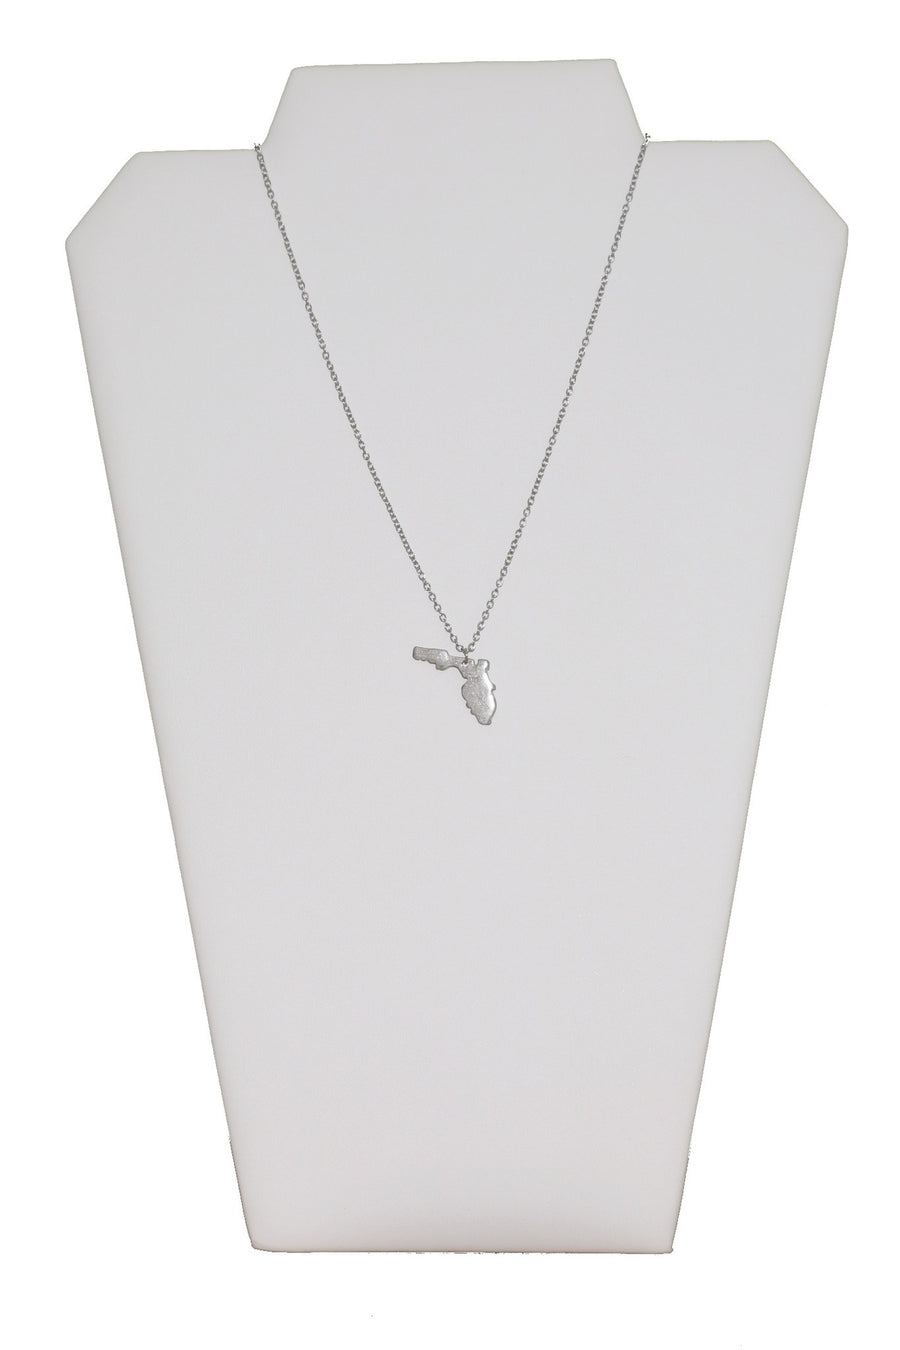 Accessories - Dainty Florida State Pendant Necklace